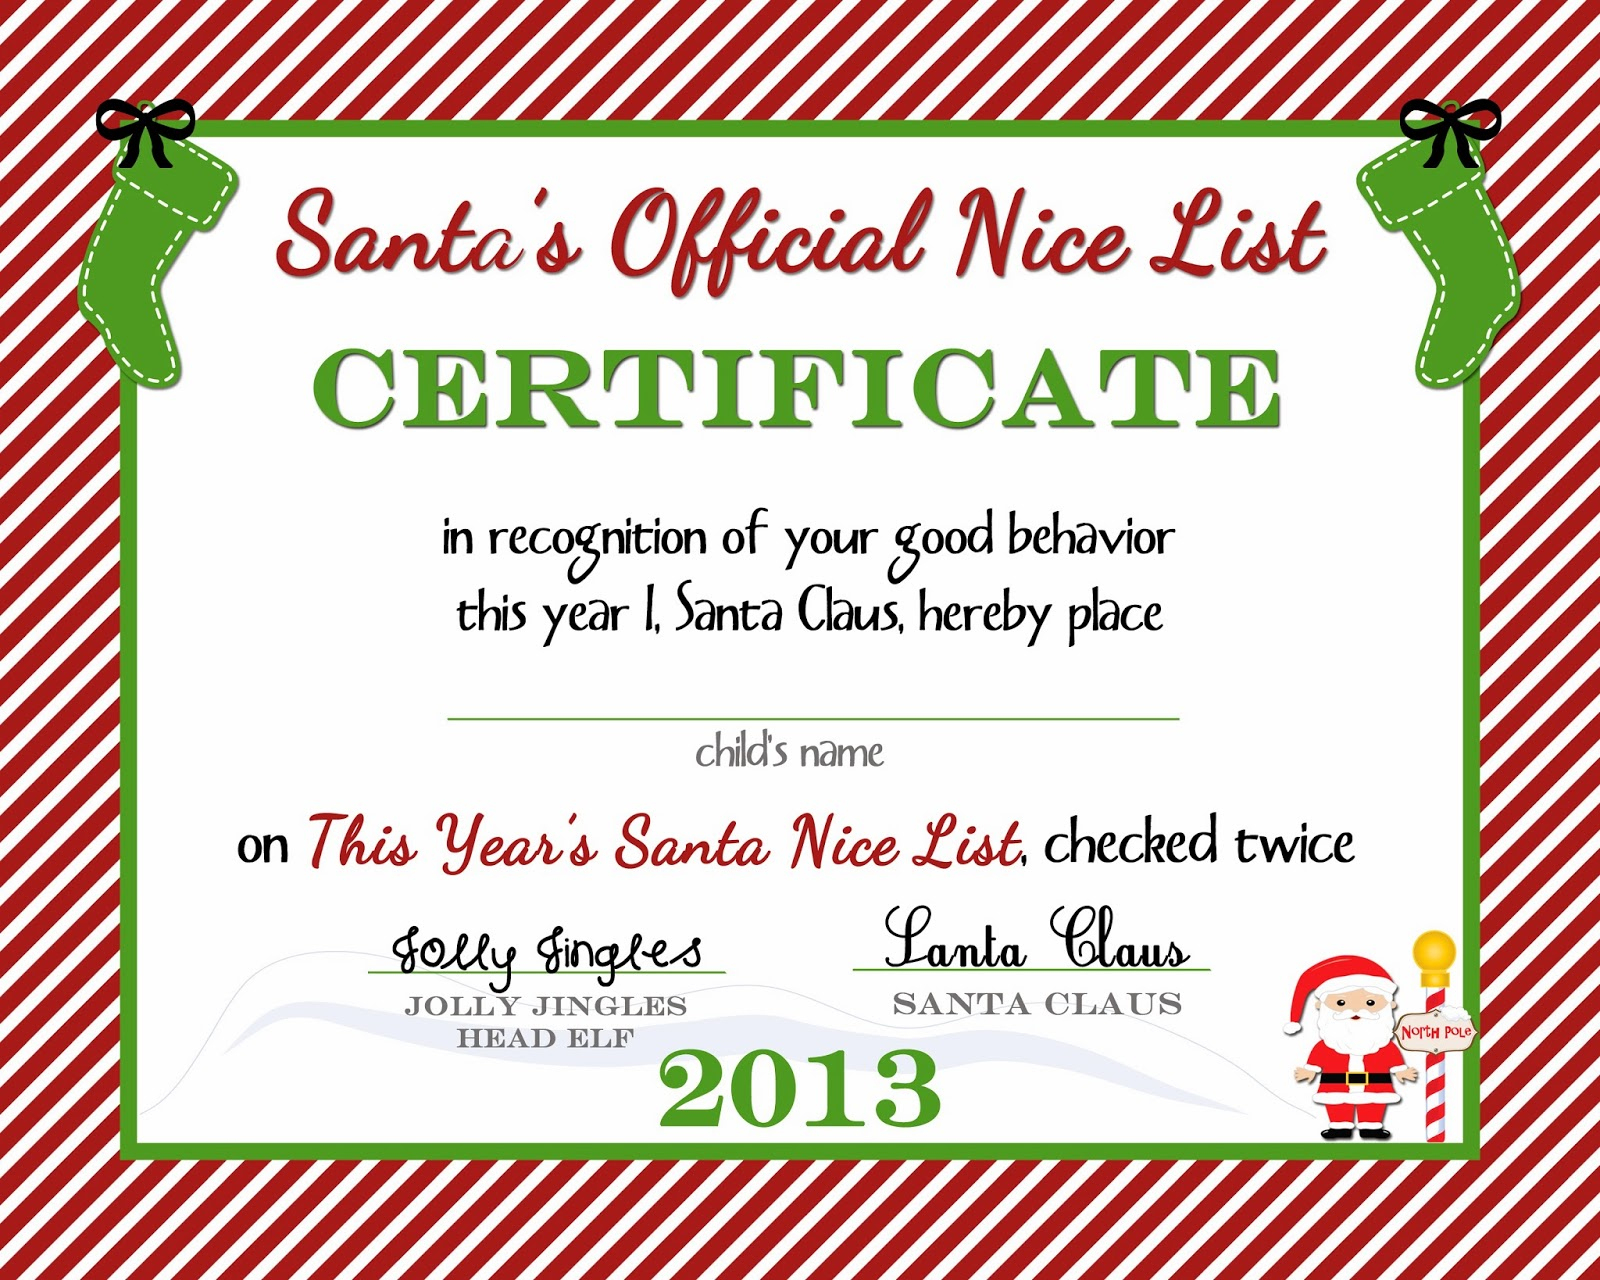 Free Printable) Nice List Certificate From The North Pole - A - Good Behaviour Certificates Free Printable